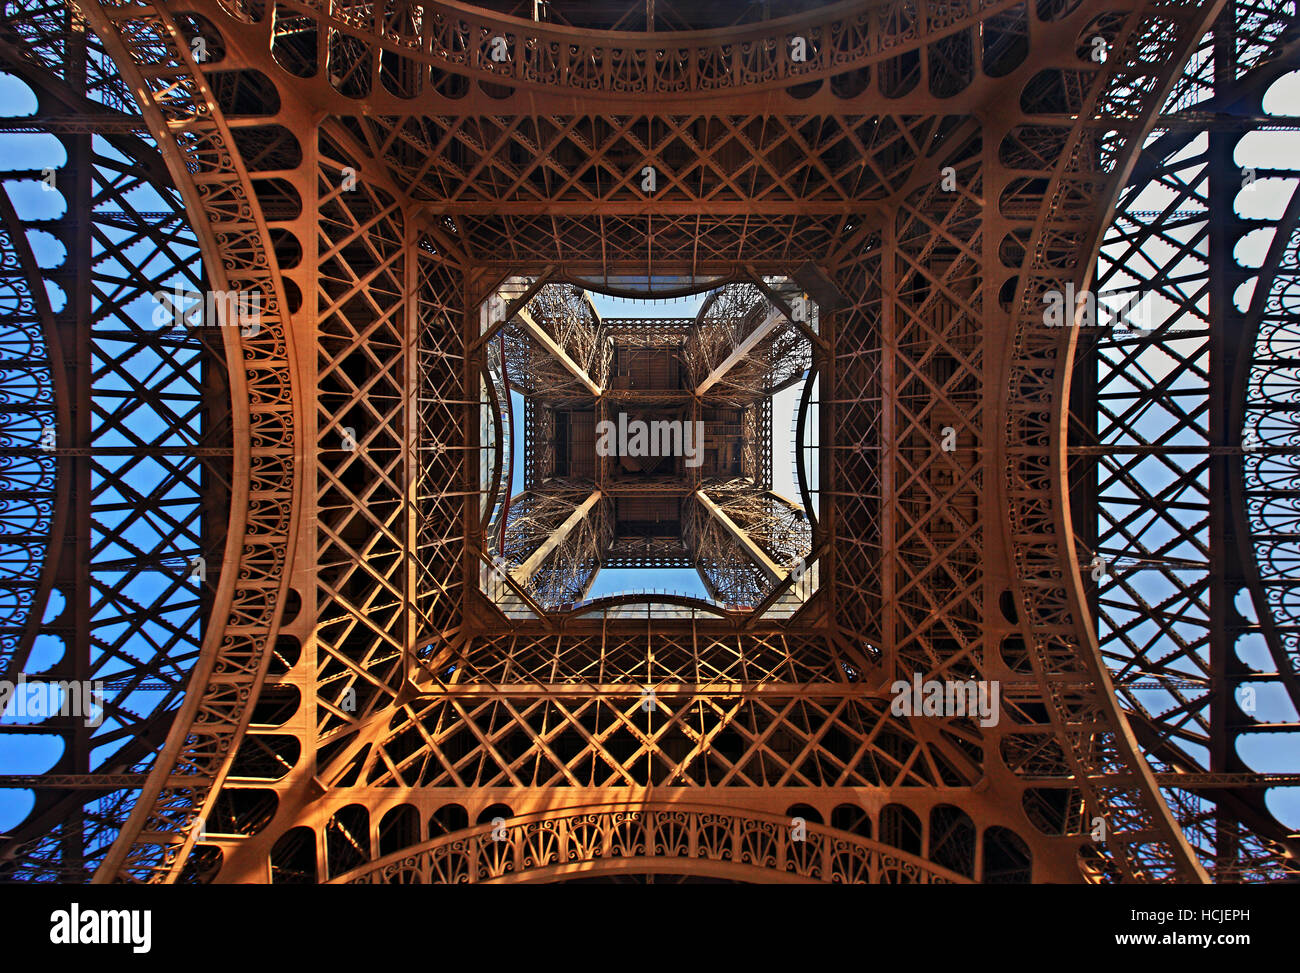 Under the Eiffel Tower, Paris, France - Stock Image